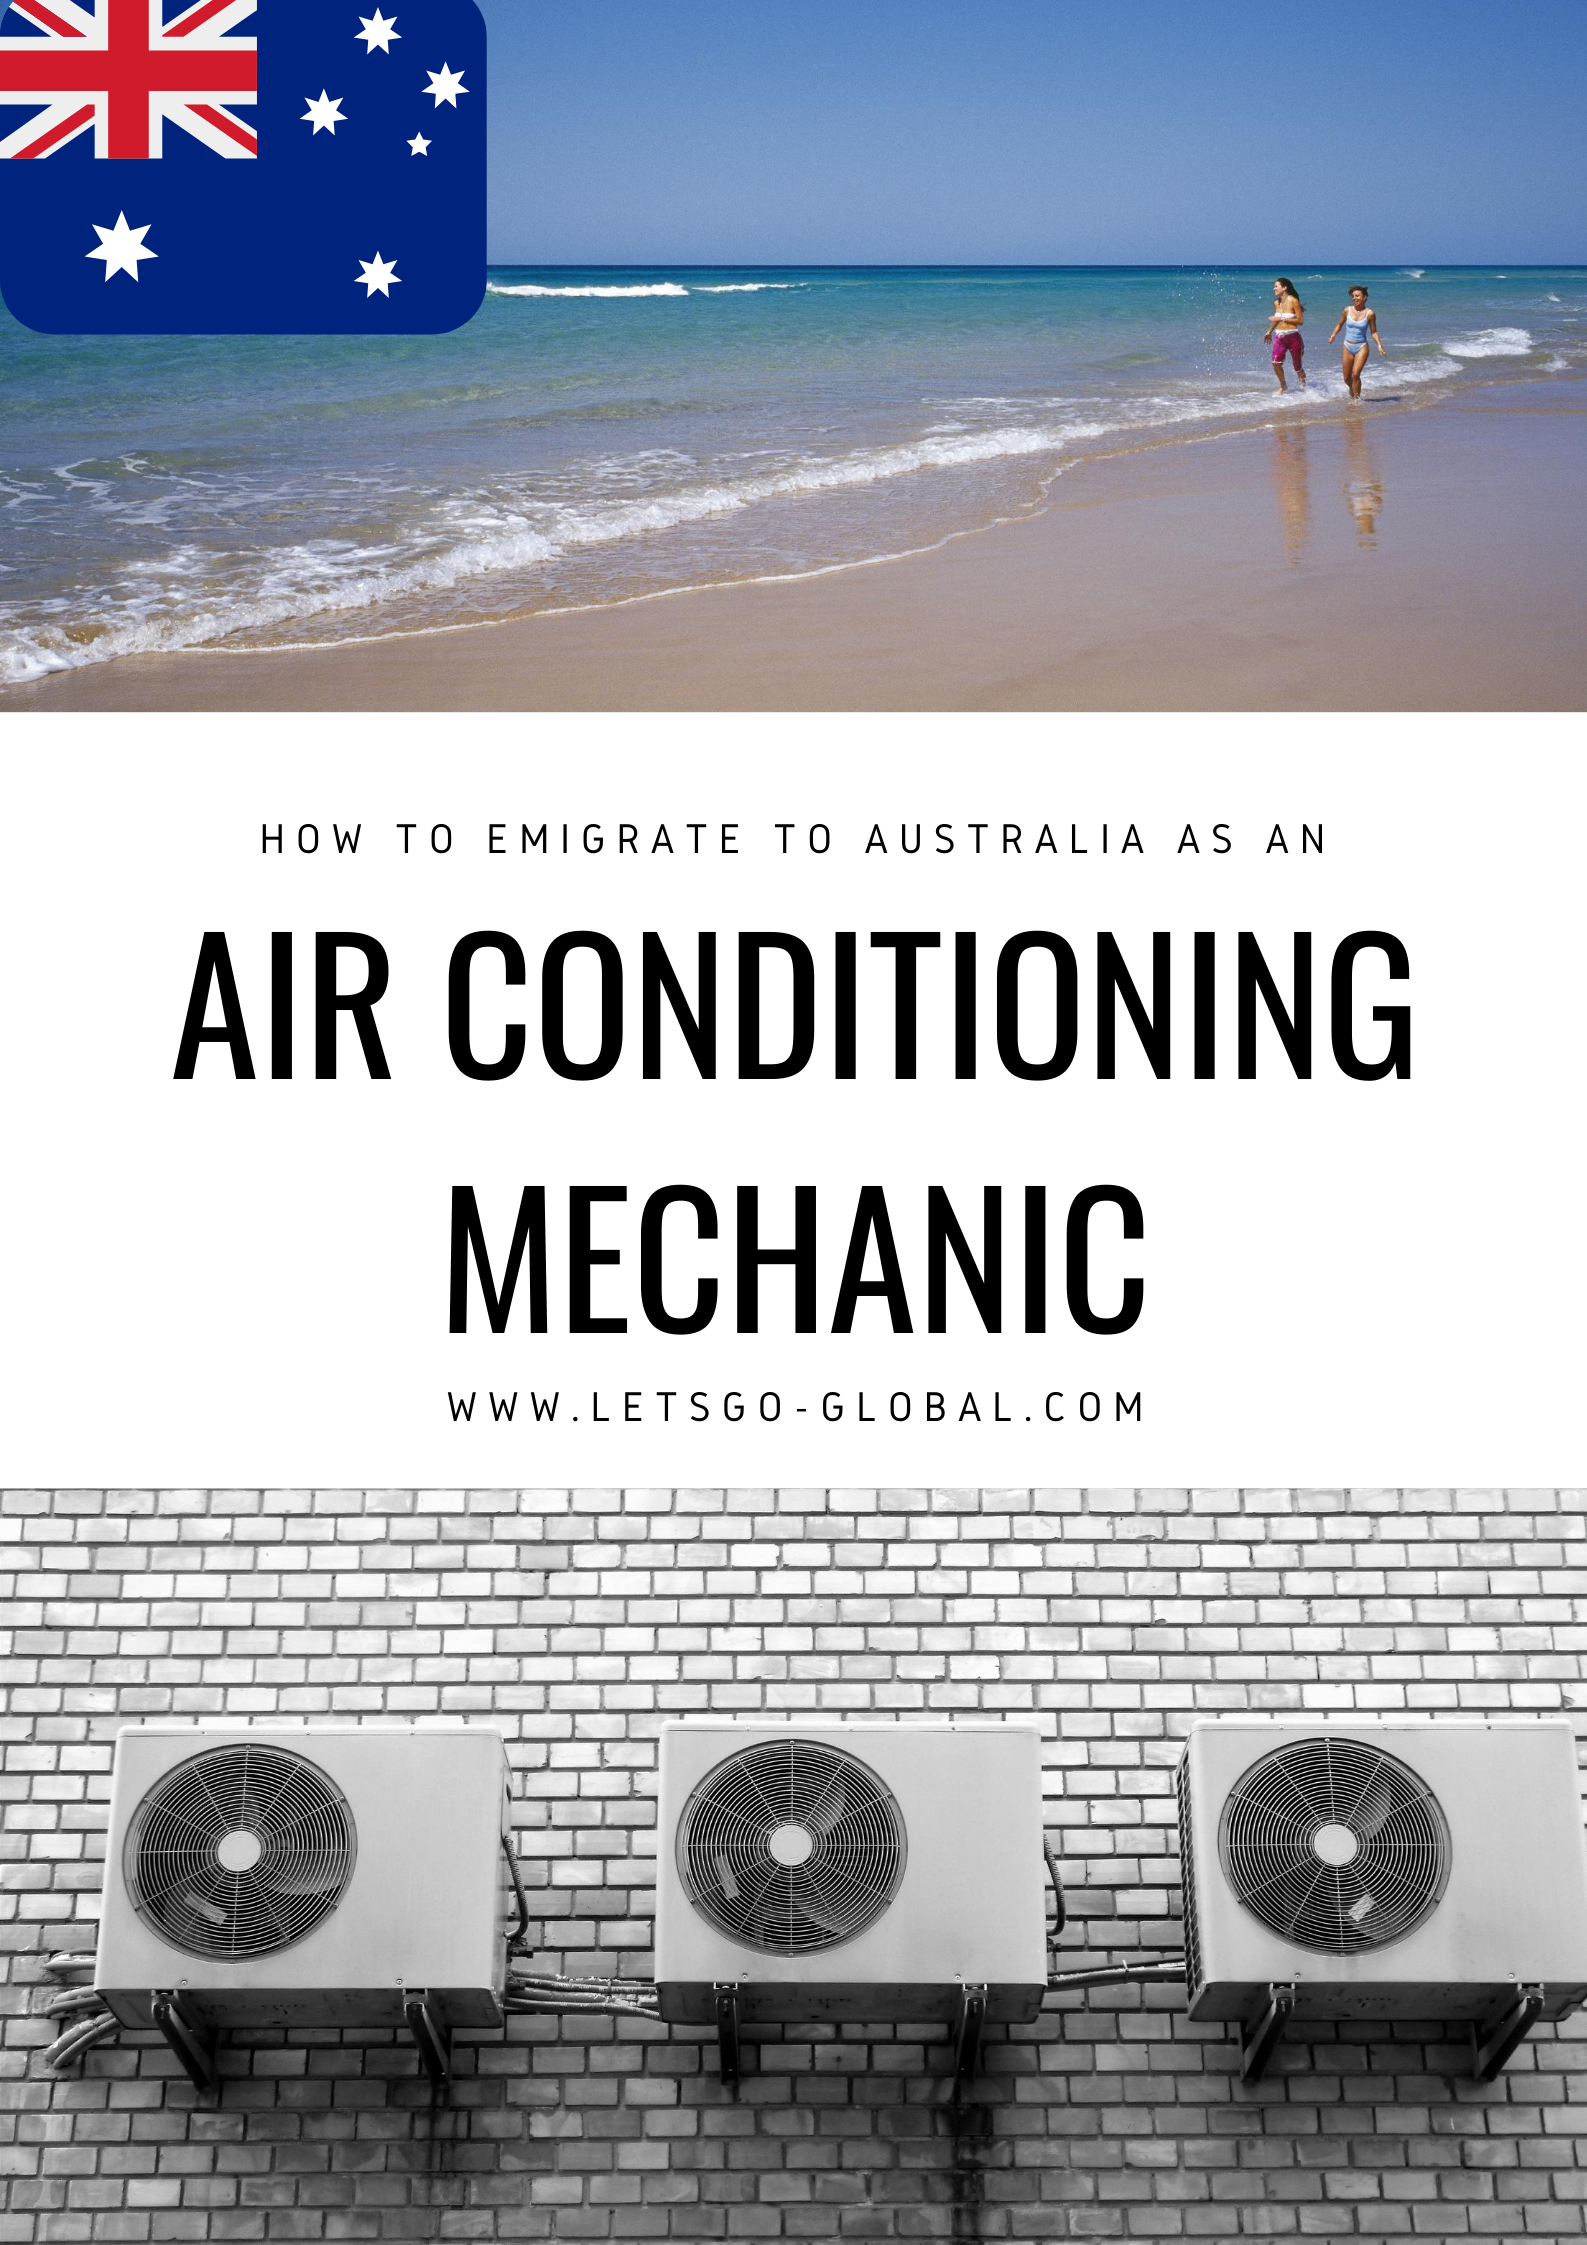 Migrate to Australia as an Air conditioning mechanic